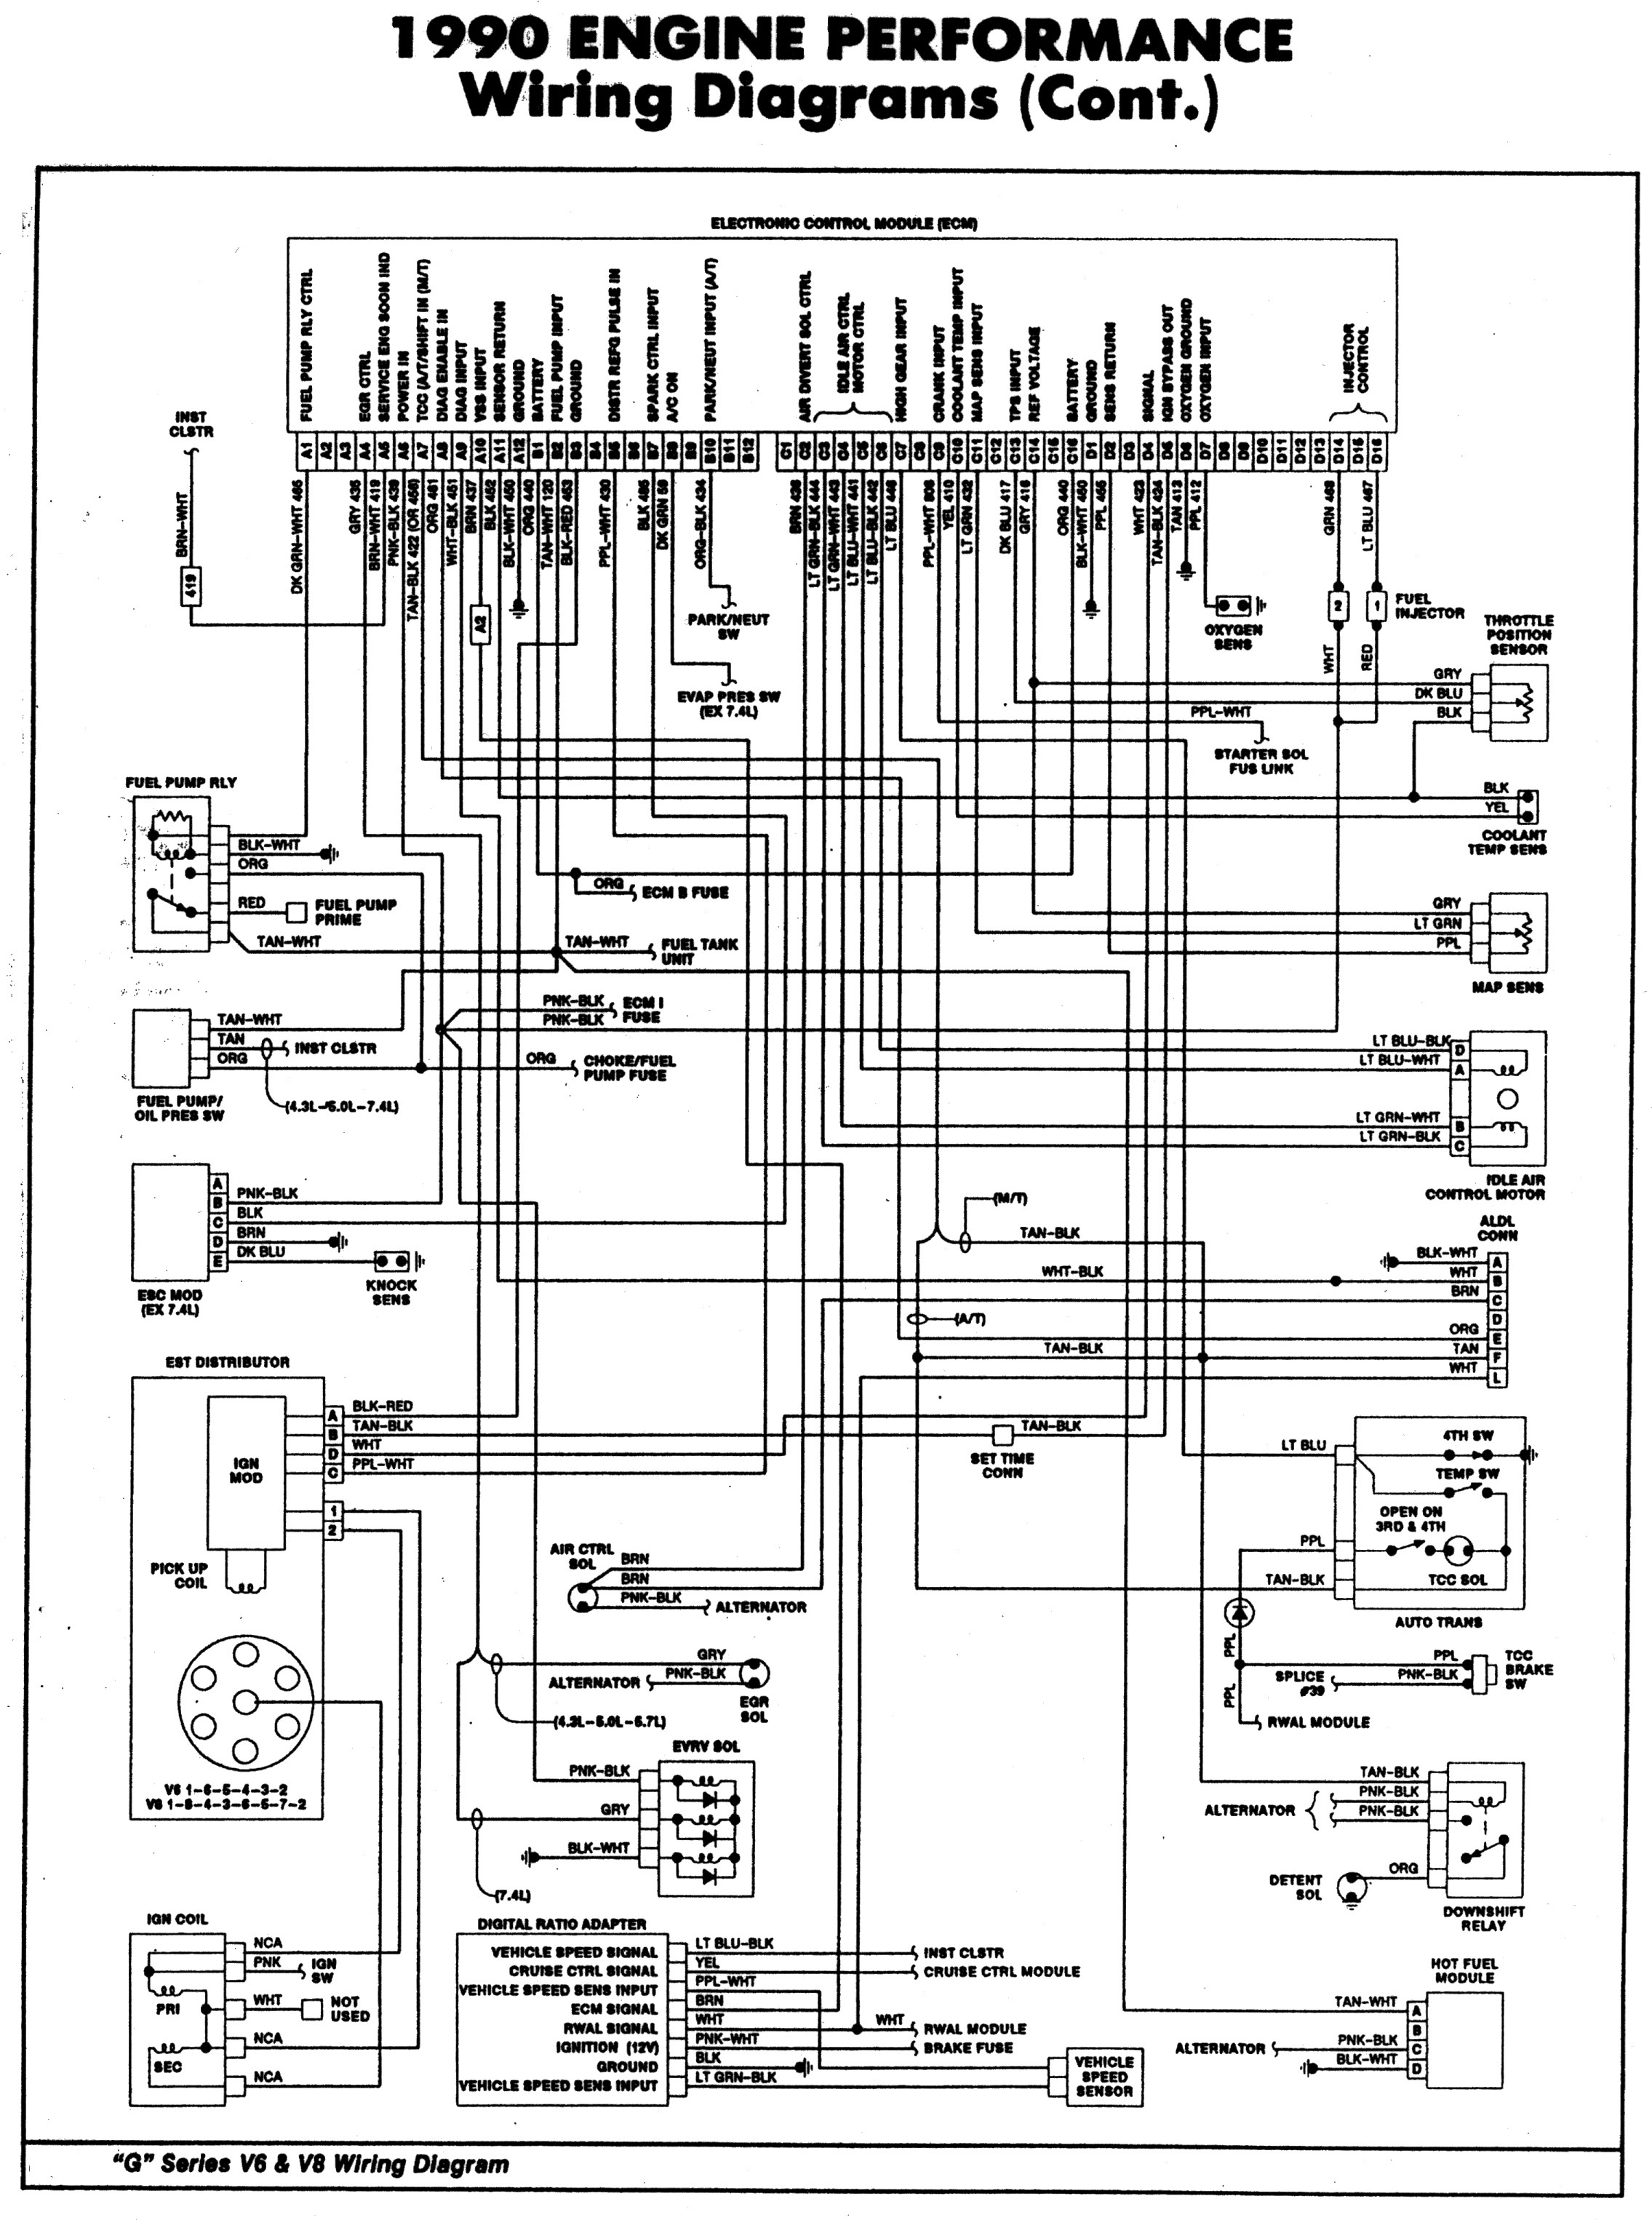 1995 Lumina 3 1 Chevy Engine Diagram - Wiring Block Diagram on 1997 chevy lumina oil pump, 1997 chevy tahoe 4wd wiring diagram, 1997 chevy s10 pickup wiring diagram, 1997 chevy express wiring diagram, 1995 chevy lumina wiring diagram, 97 lumina wiring diagram, 1996 chevy lumina wiring diagram, 1997 chevy lumina engine, 1997 chevy s-10 wiring diagram, 1997 chevy lumina wheels, 1997 chevy lumina firing order, 1997 chevy malibu wiring diagram, 1997 chevy lumina seats, 1997 chevy lumina suspension, 2001 chevy lumina wiring diagram, 1997 chevy camaro wiring diagram, 97 chevy lumina engine diagram, 1997 chevy lumina fuse box, 1990 chevy lumina wiring diagram, 1997 chevy lumina air conditioning,